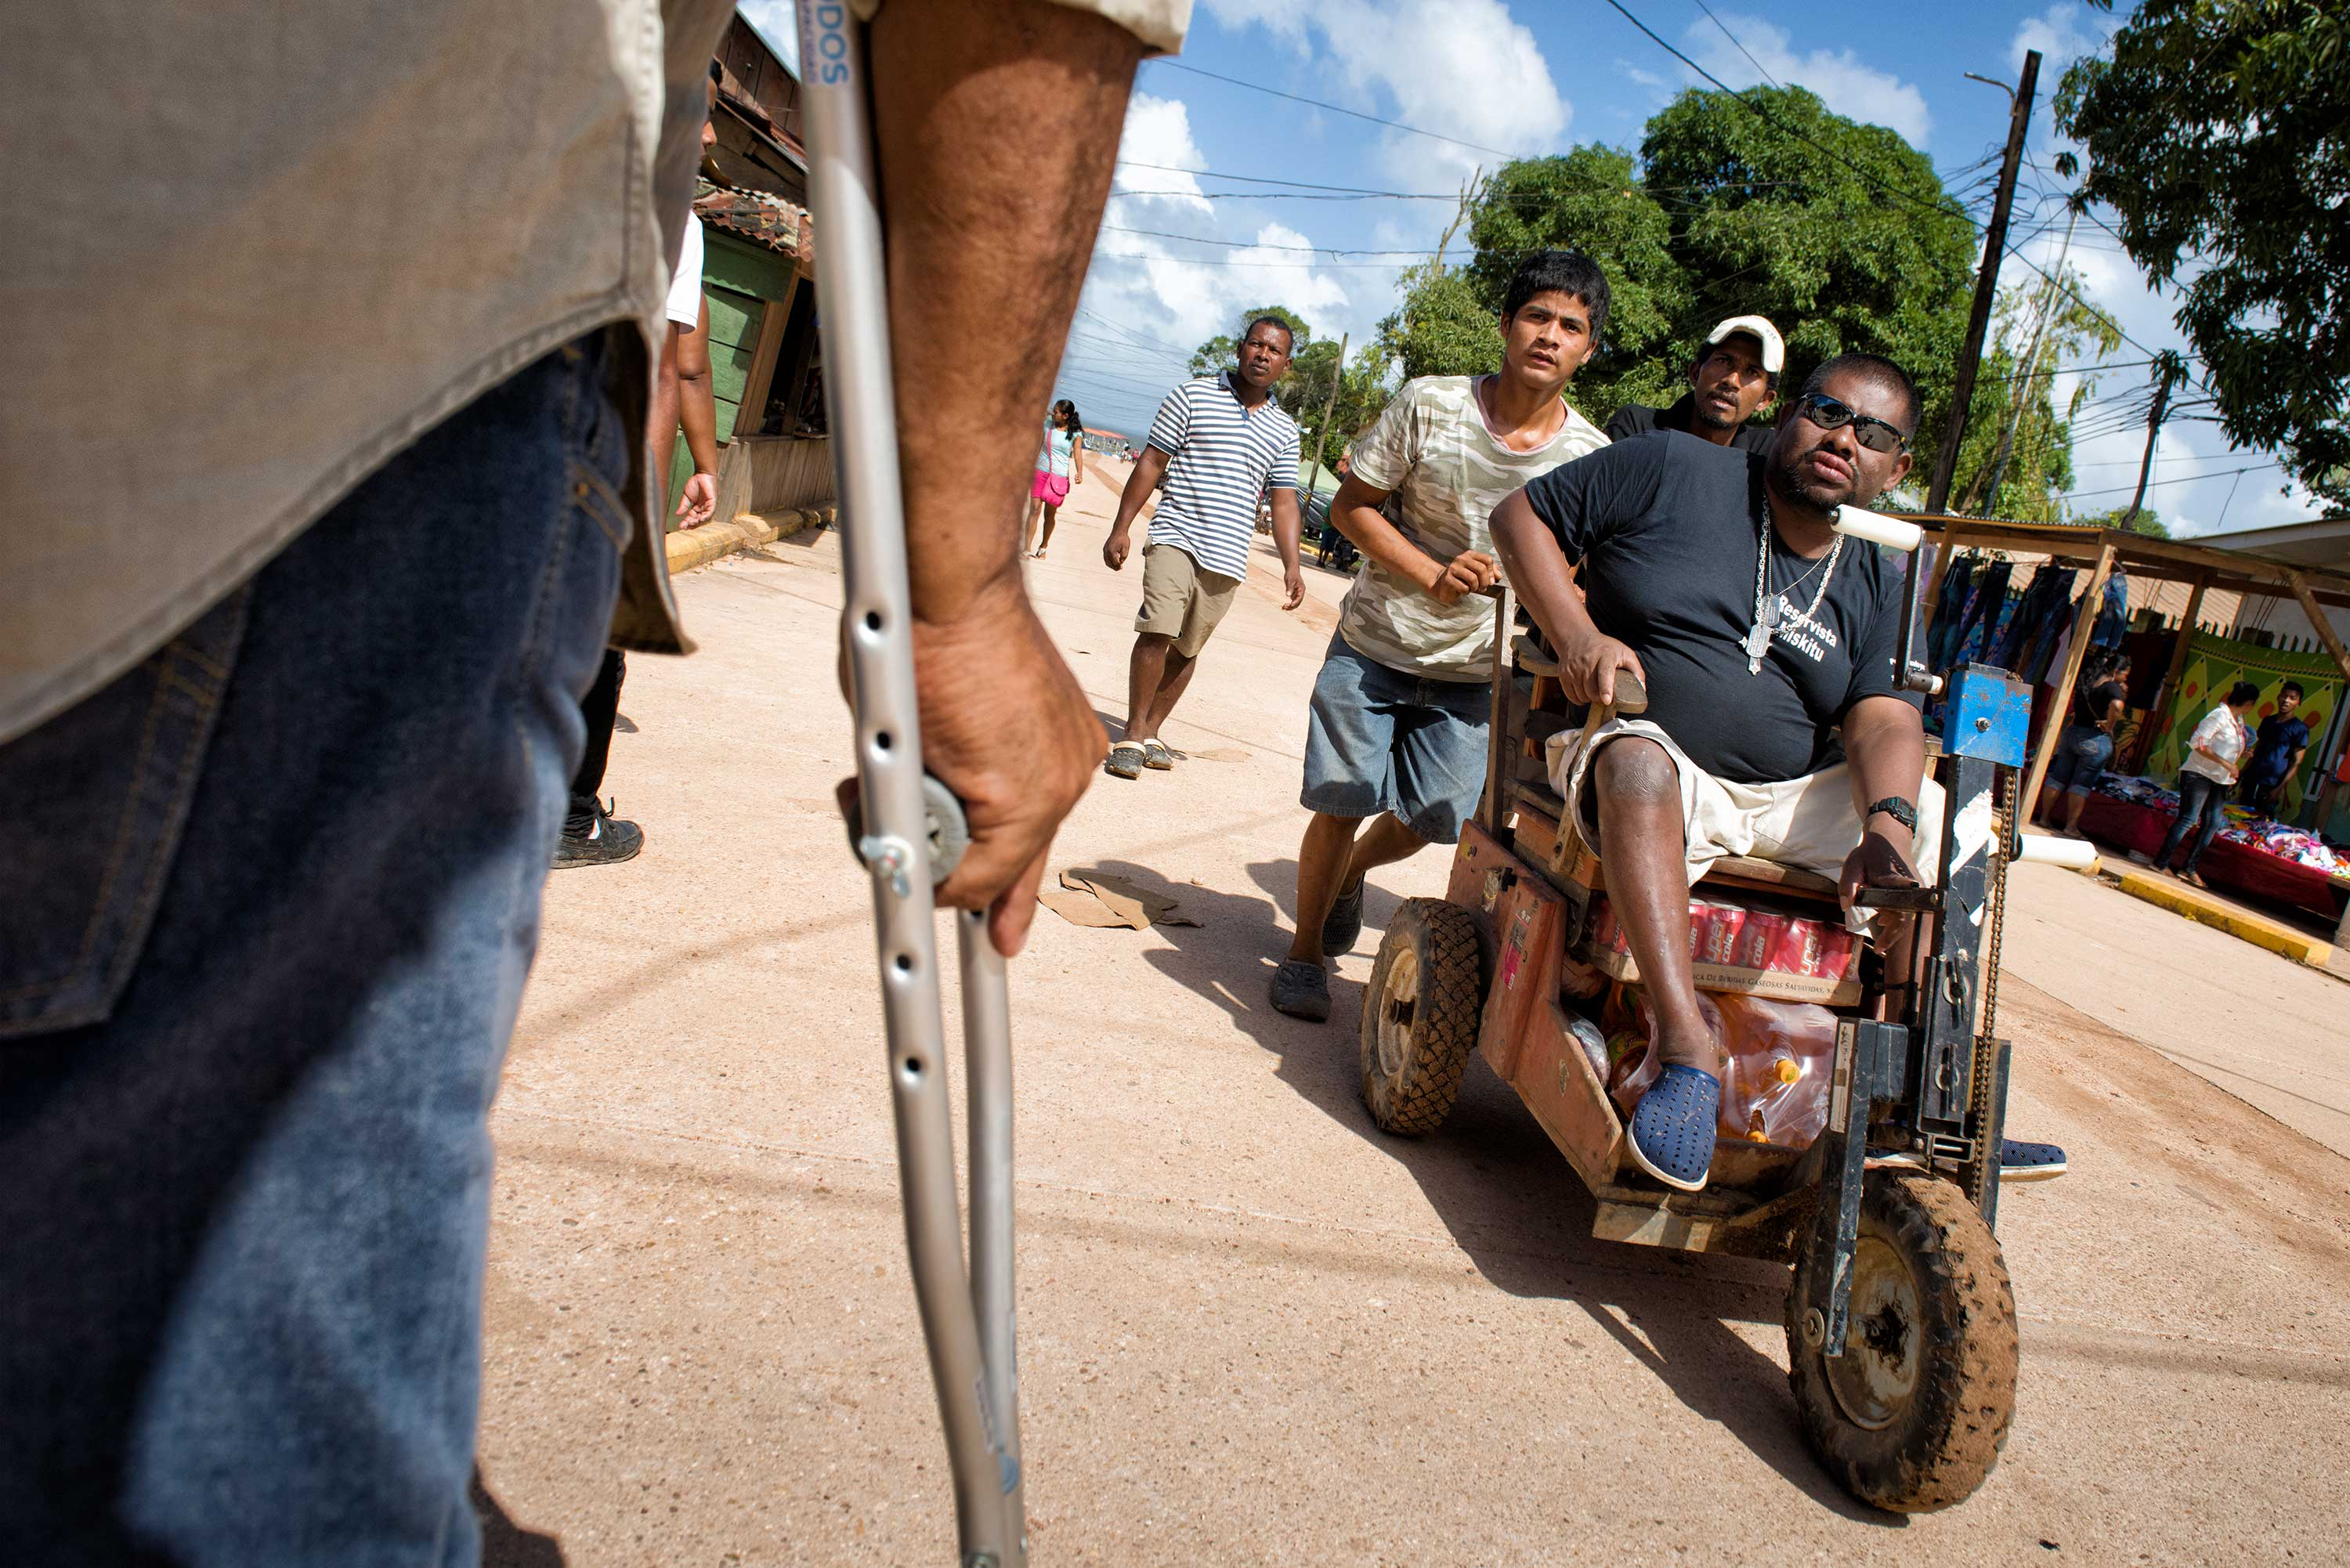 In a foreground, the back of a person person using crutches while a man in sunglasses rides a motorized chair is pushed by two men .